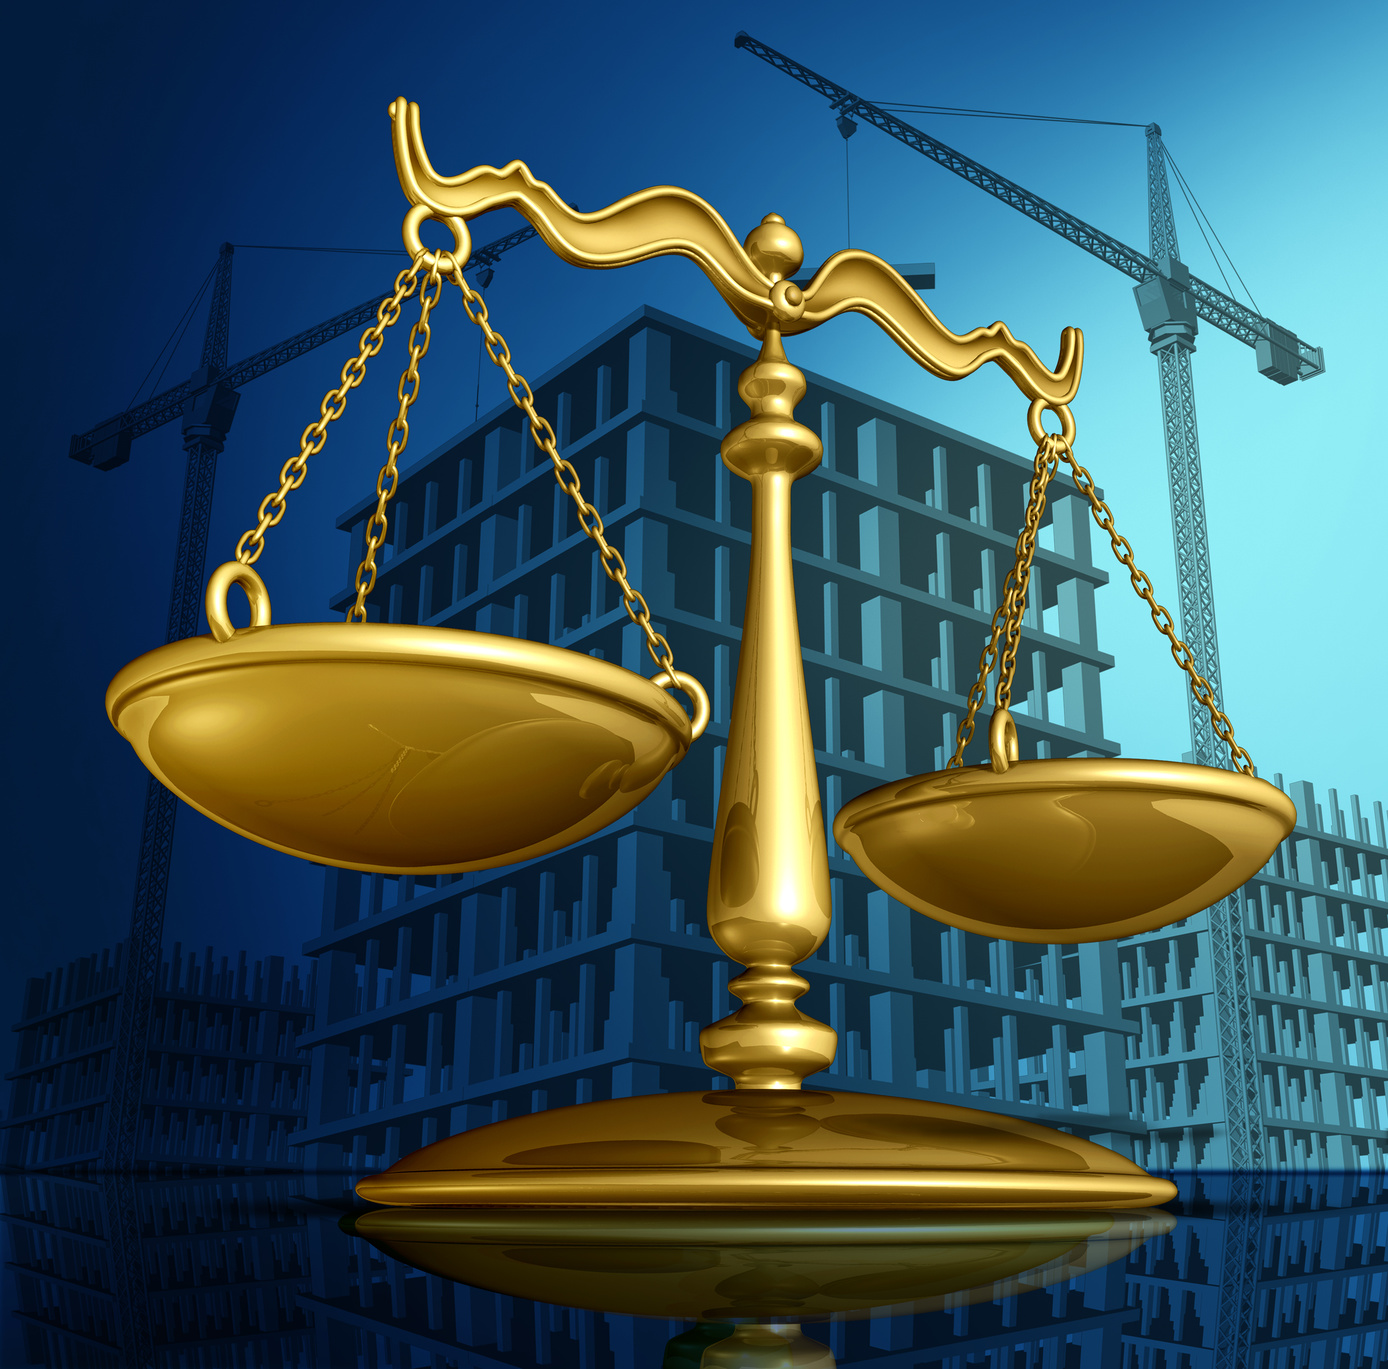 Construction law concept as a justice scale over a working building site with cranes and a structure being built as a concept for architecture permits and real estate regulations.